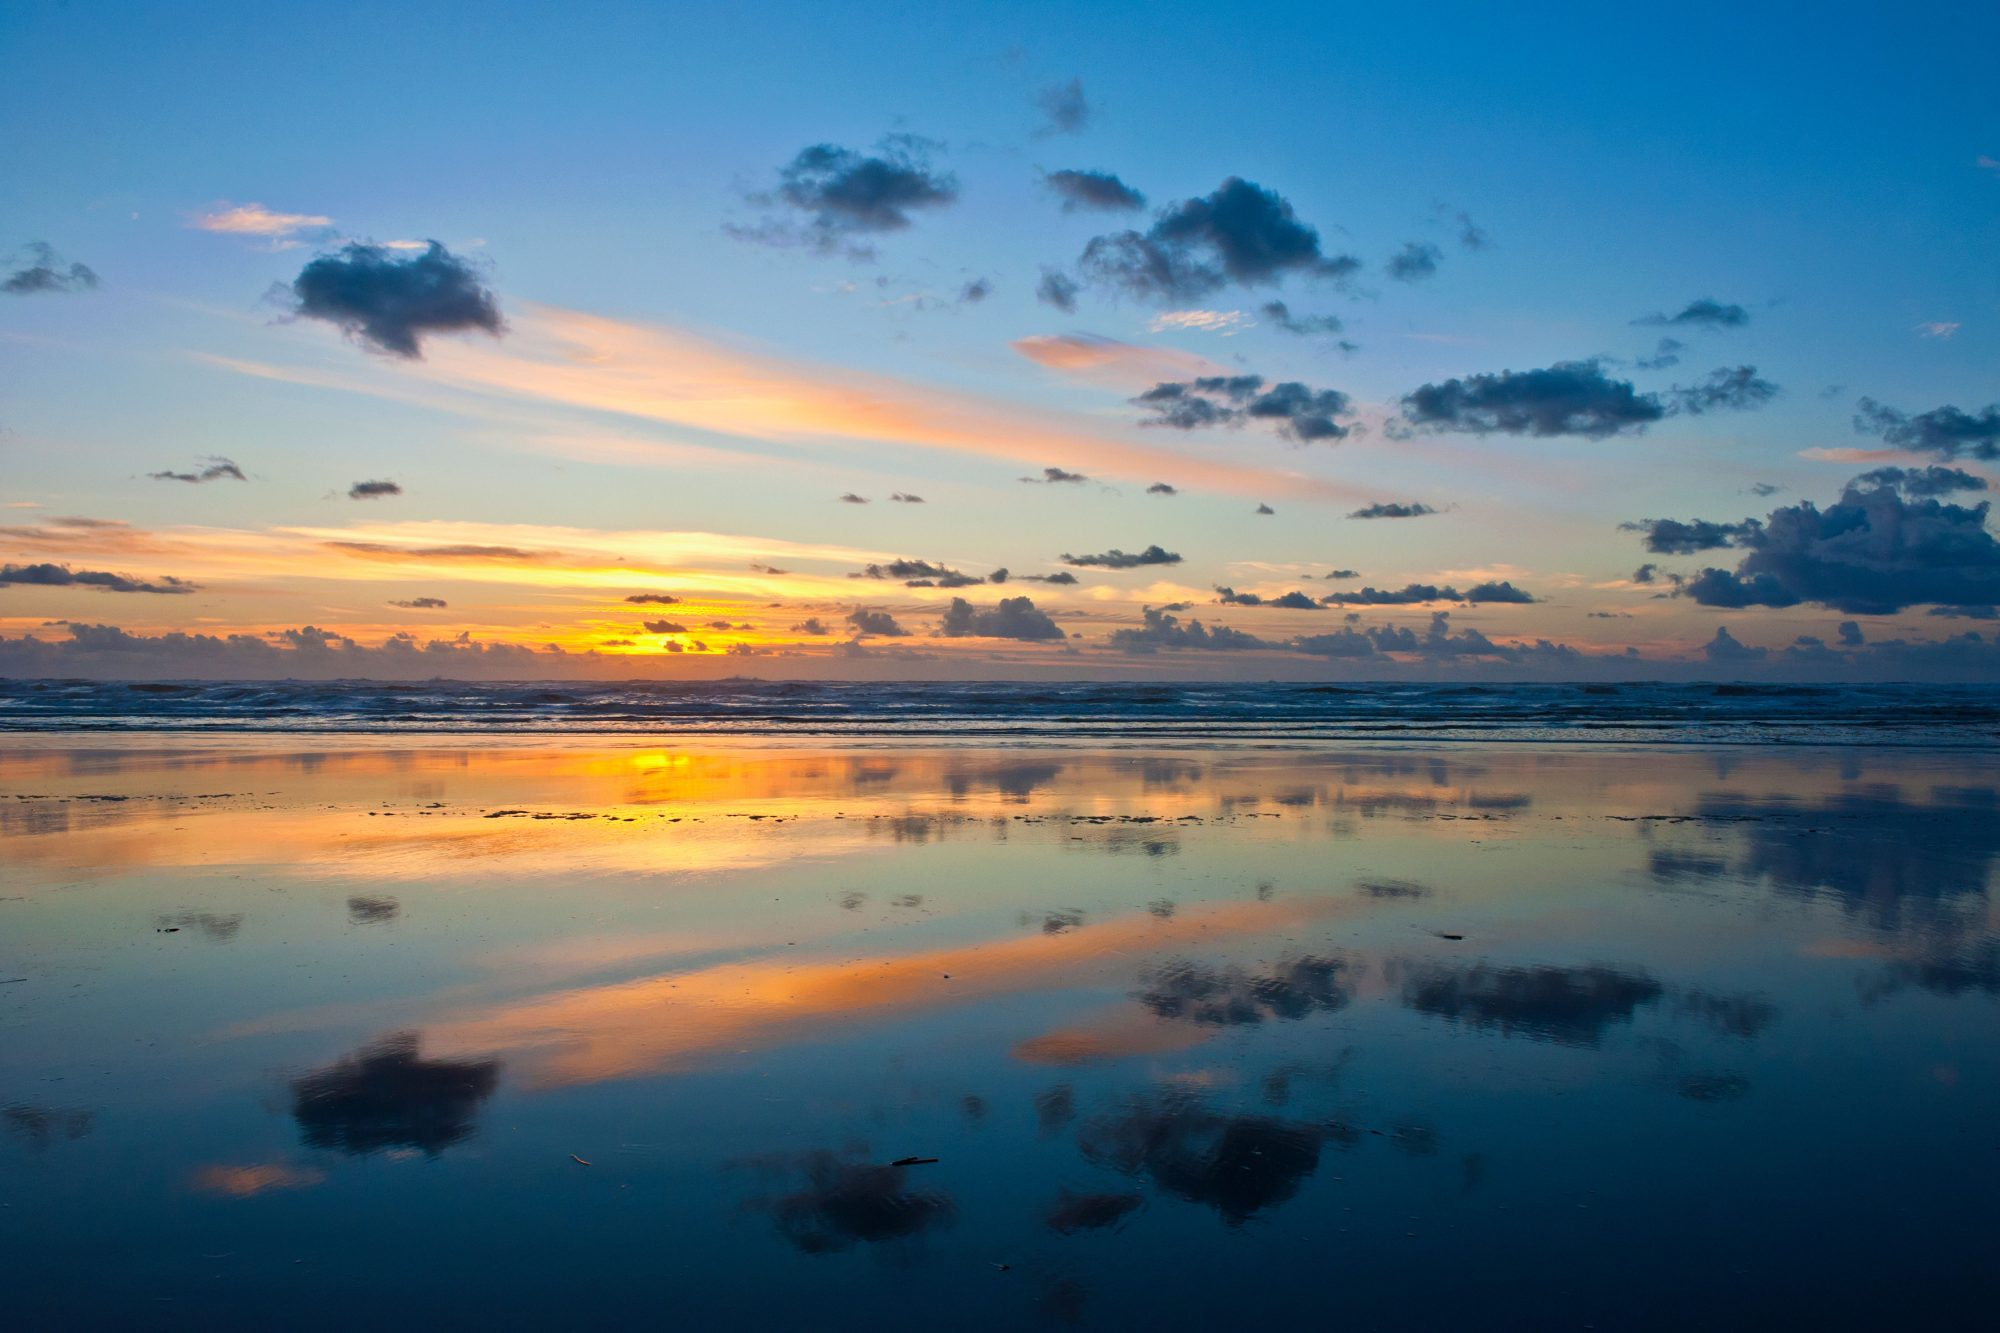 Seattle residents may already know of this West Coast beach town (Ocean Shores is just three hours west of the city), but newcomers will fall for the windswept shores and endless ocean views. Seasonal offerings include whale-watching cruises and...